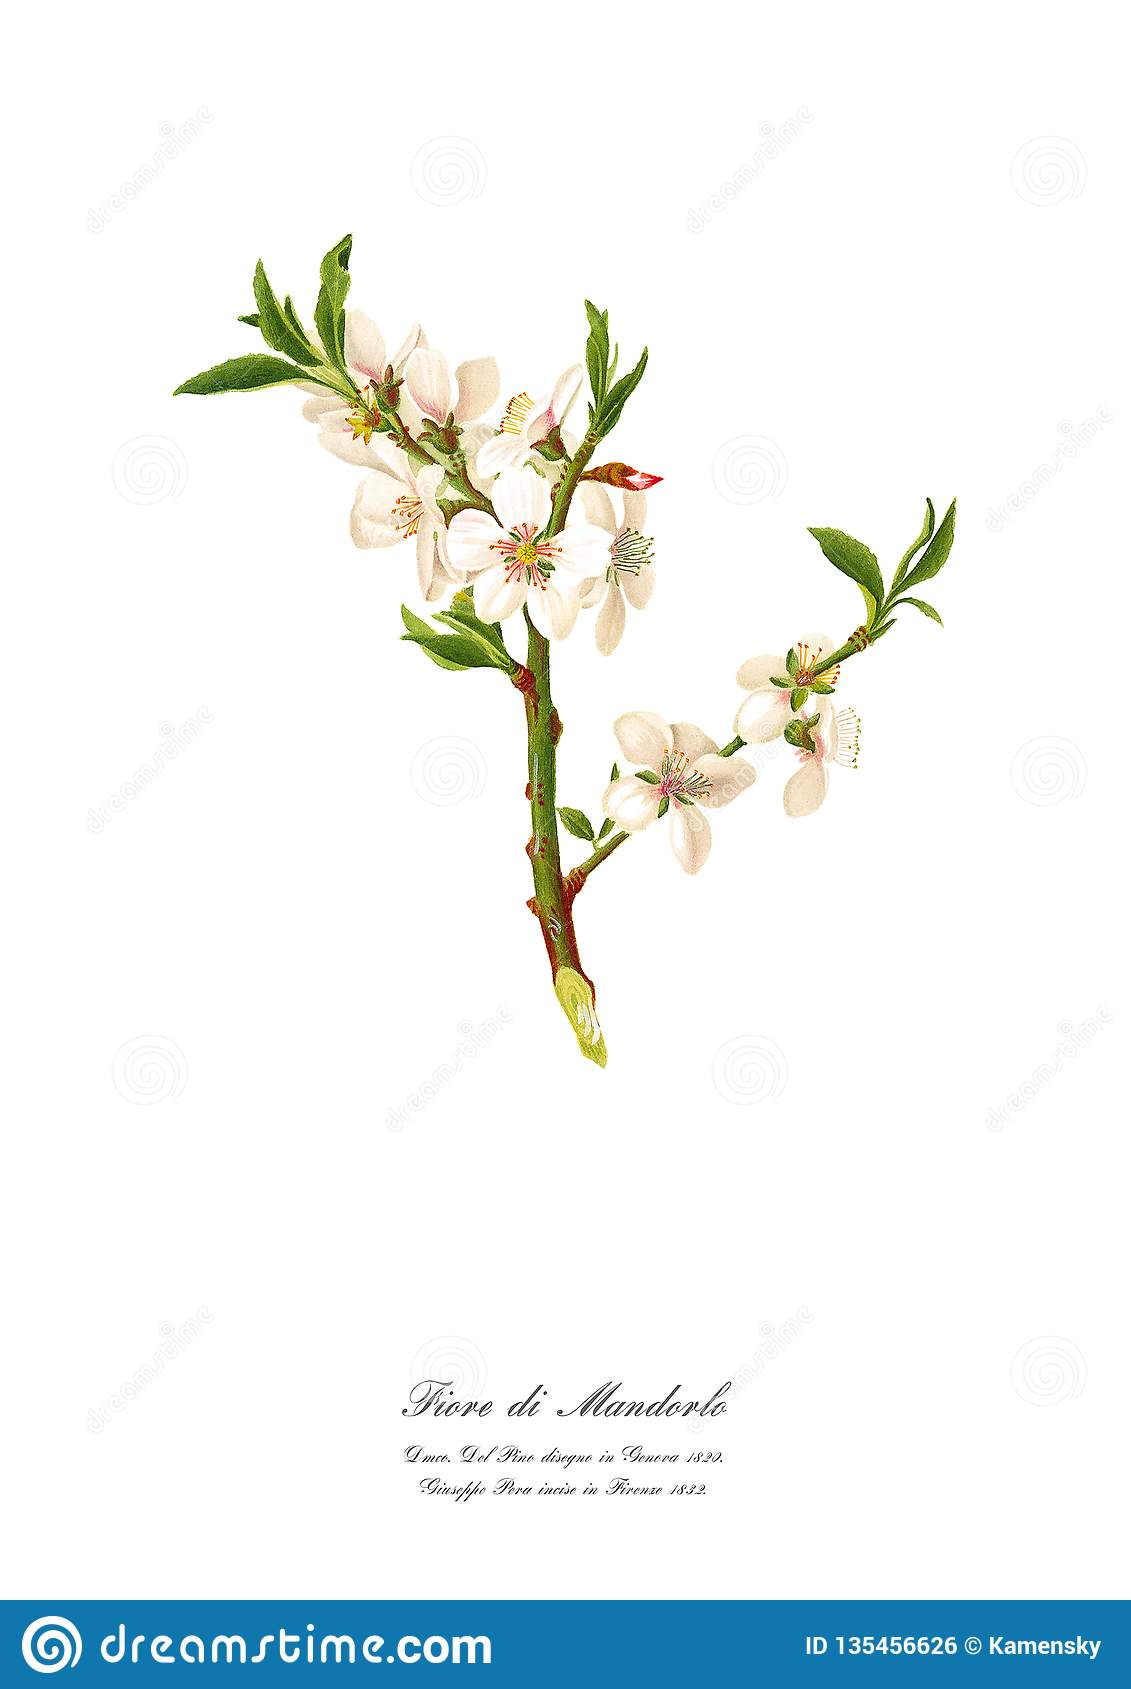 Flowering Almond Tree Stock Illustrations 161 Flowering Almond Tree Stock Illustrations Vectors Clipart Dreamstime